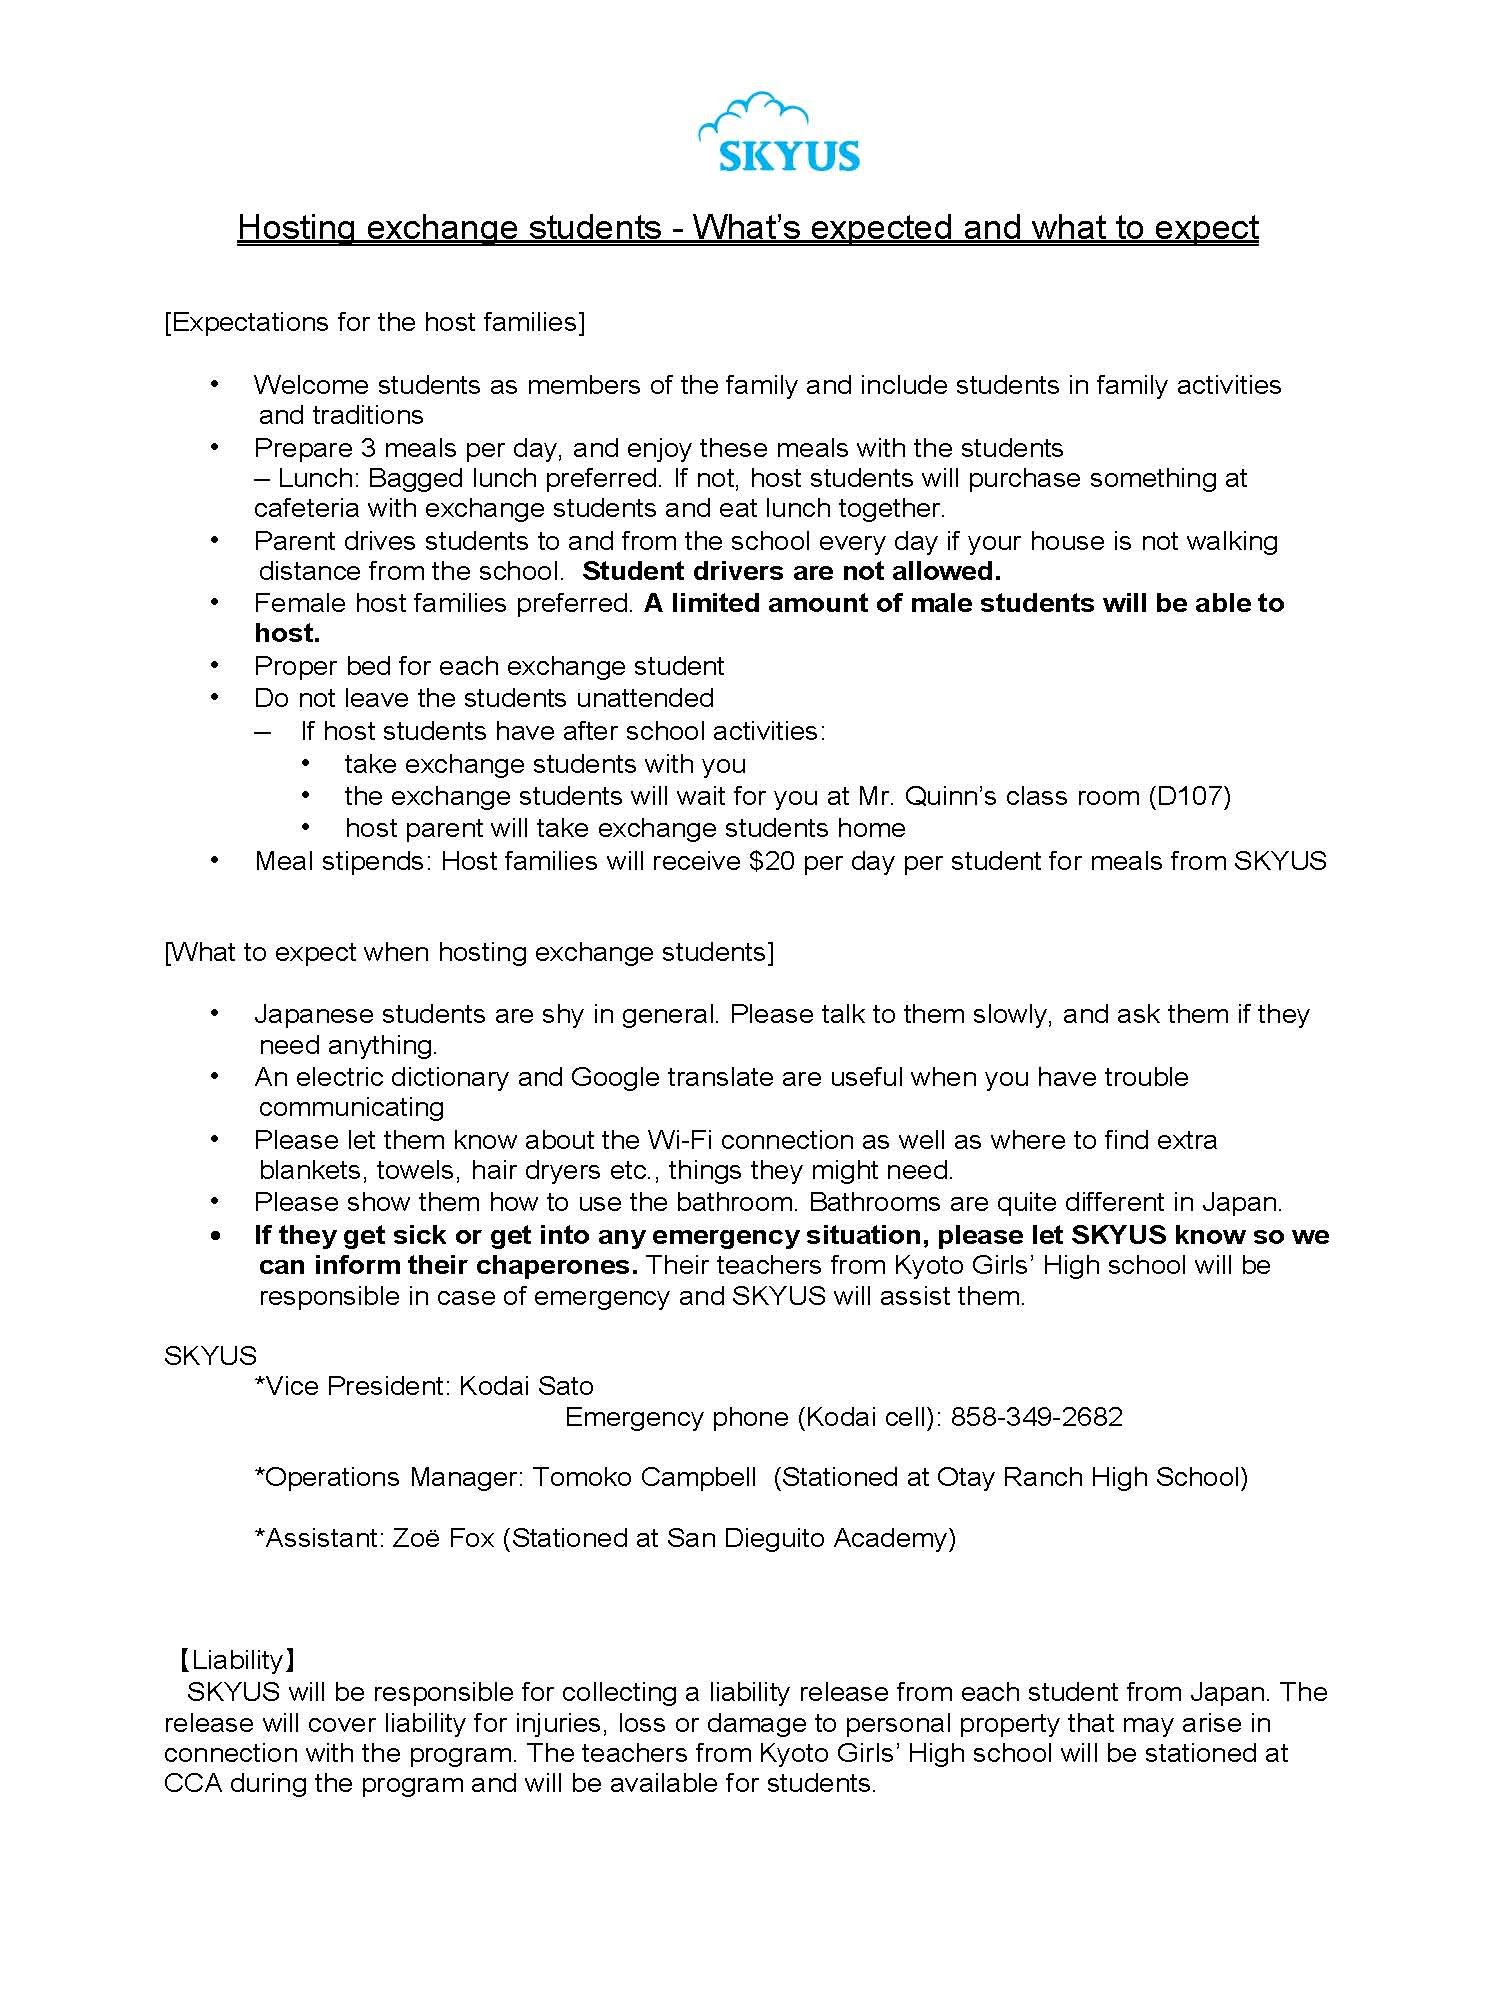 Host a Japanese Exchange Student Info Page 2